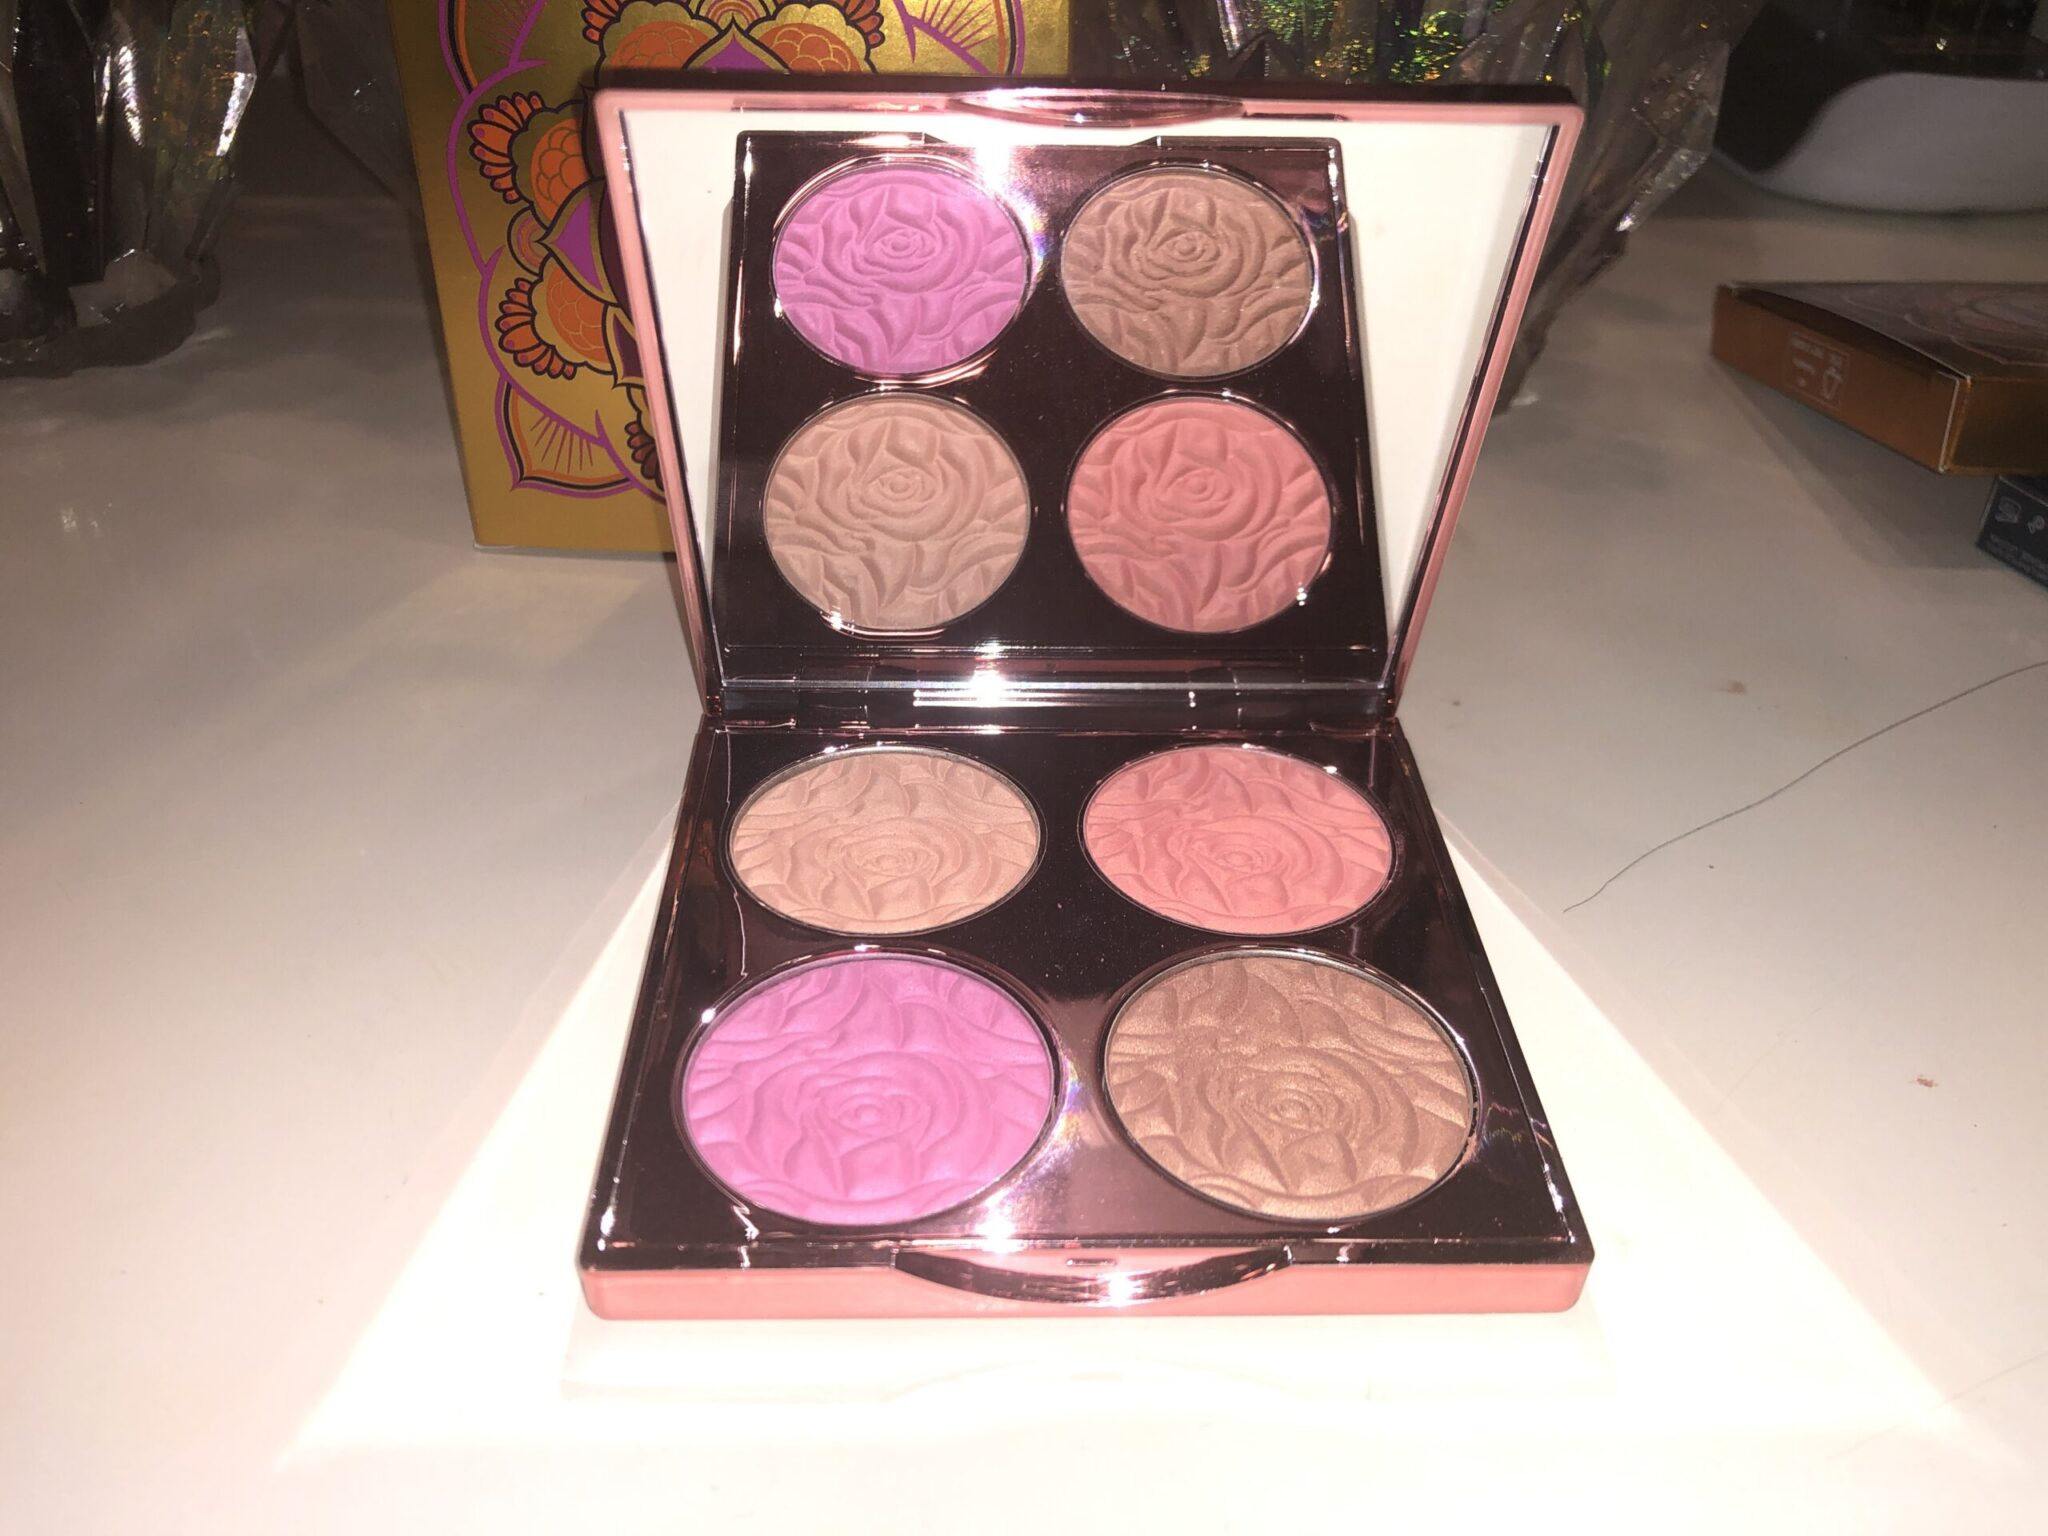 INSIDE THE BEACH BOMB PALETTE IS A MIRROR, AND FOUR PANS WITH EMBOSSED POWDERS